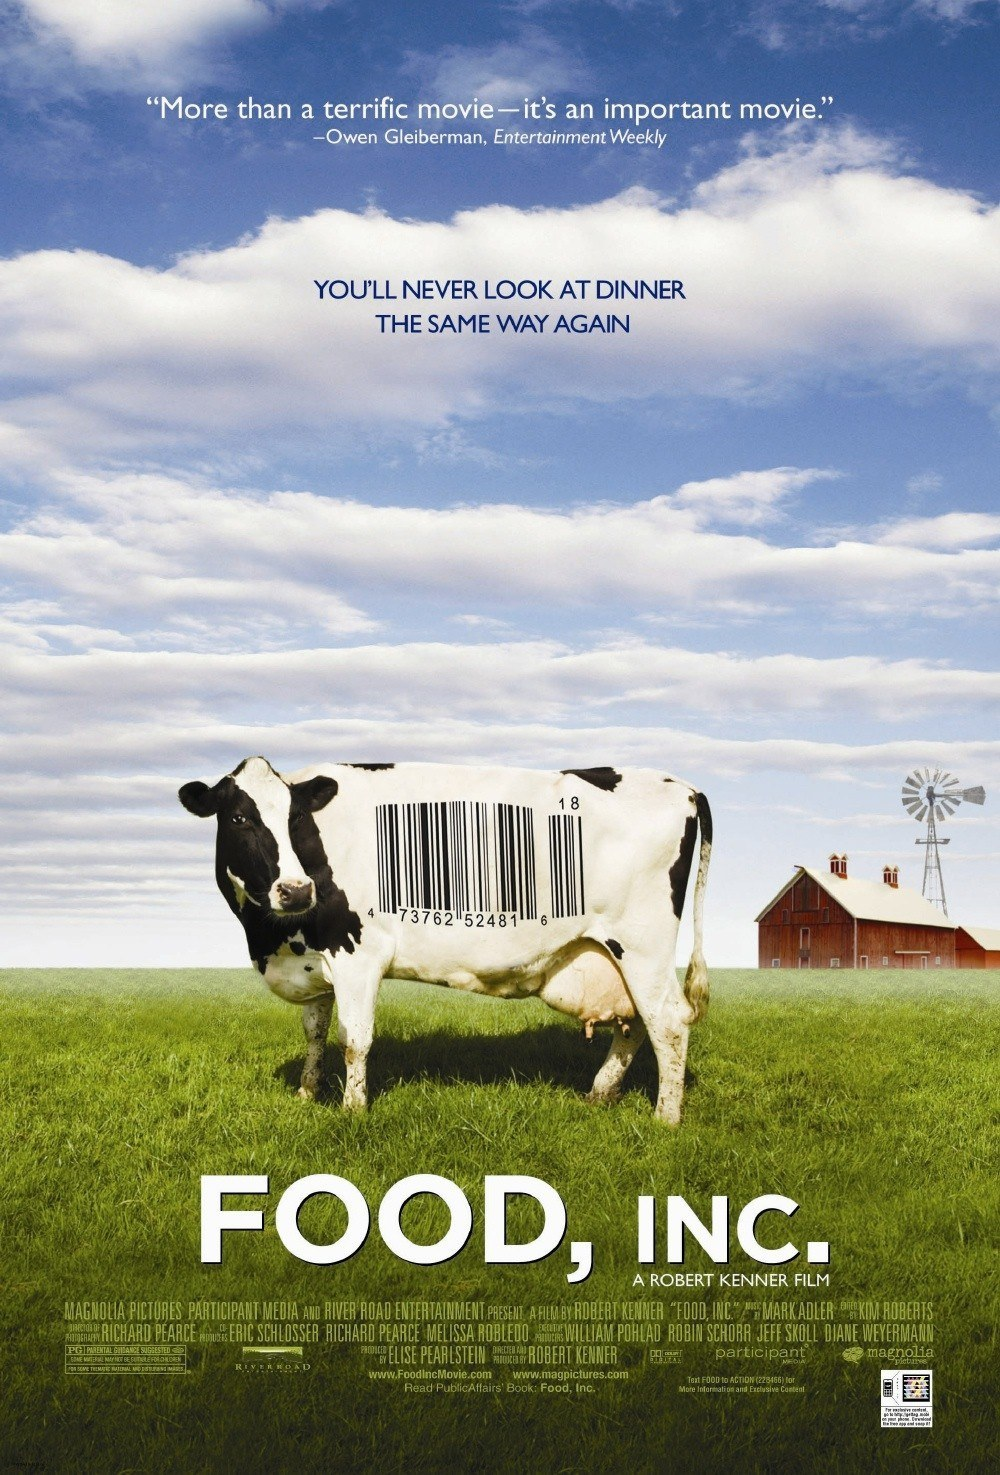 the global food supply crisis in food inc a film by robert kenner In light of the recent outbreaks of salmonella in the us, it is worth reviewing food, inc, the recent film exposé of the food industrythe documentary, directed by robert kenner, was first released to theaters in the us in 2009, and on dvd in 2010.